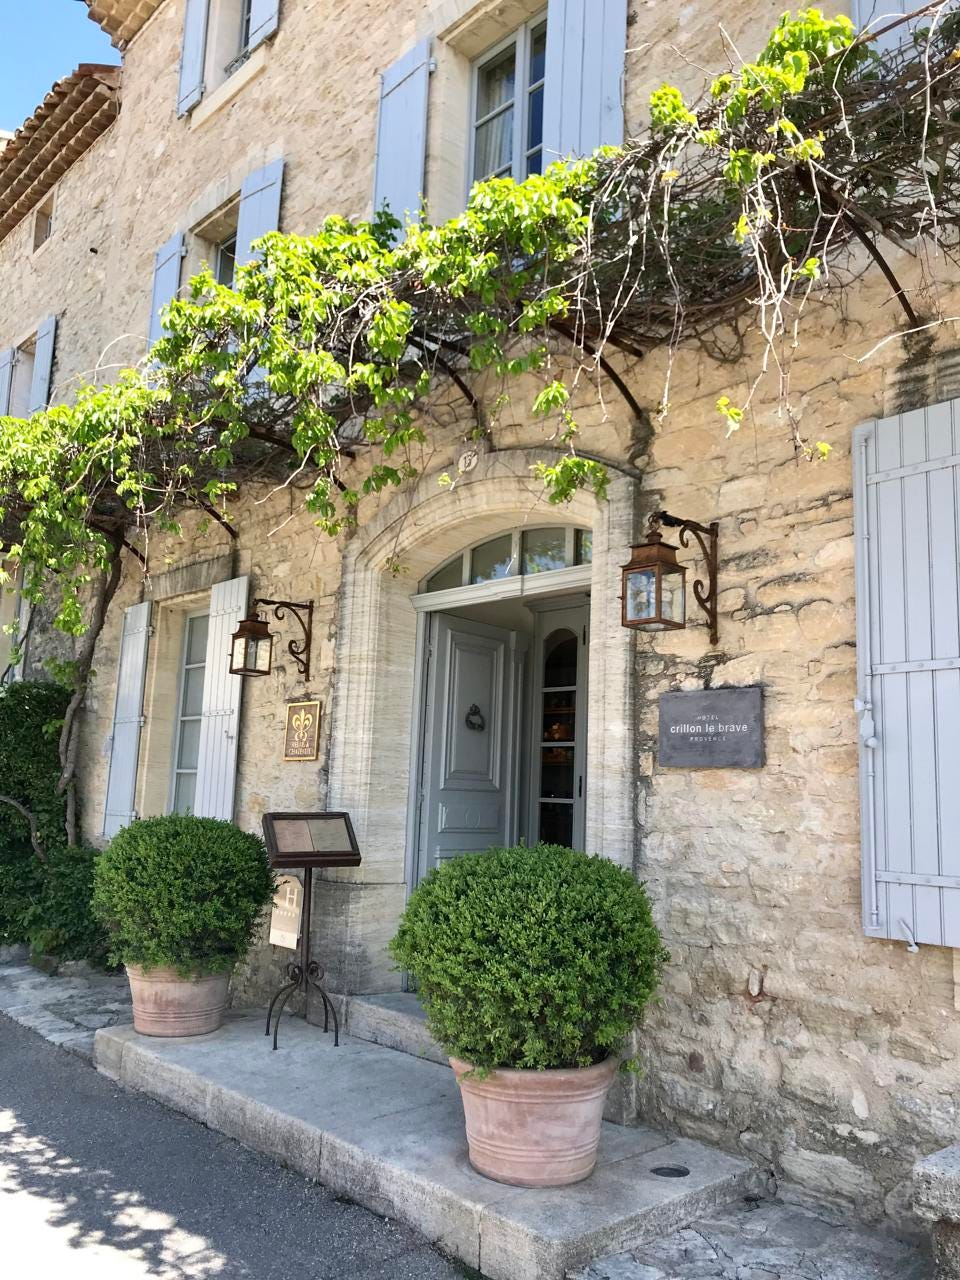 Https Www Forbes Com Sites Ceciliapelloux 2019 07 15 Do You Want To Experience Being Out Of Time In Provence